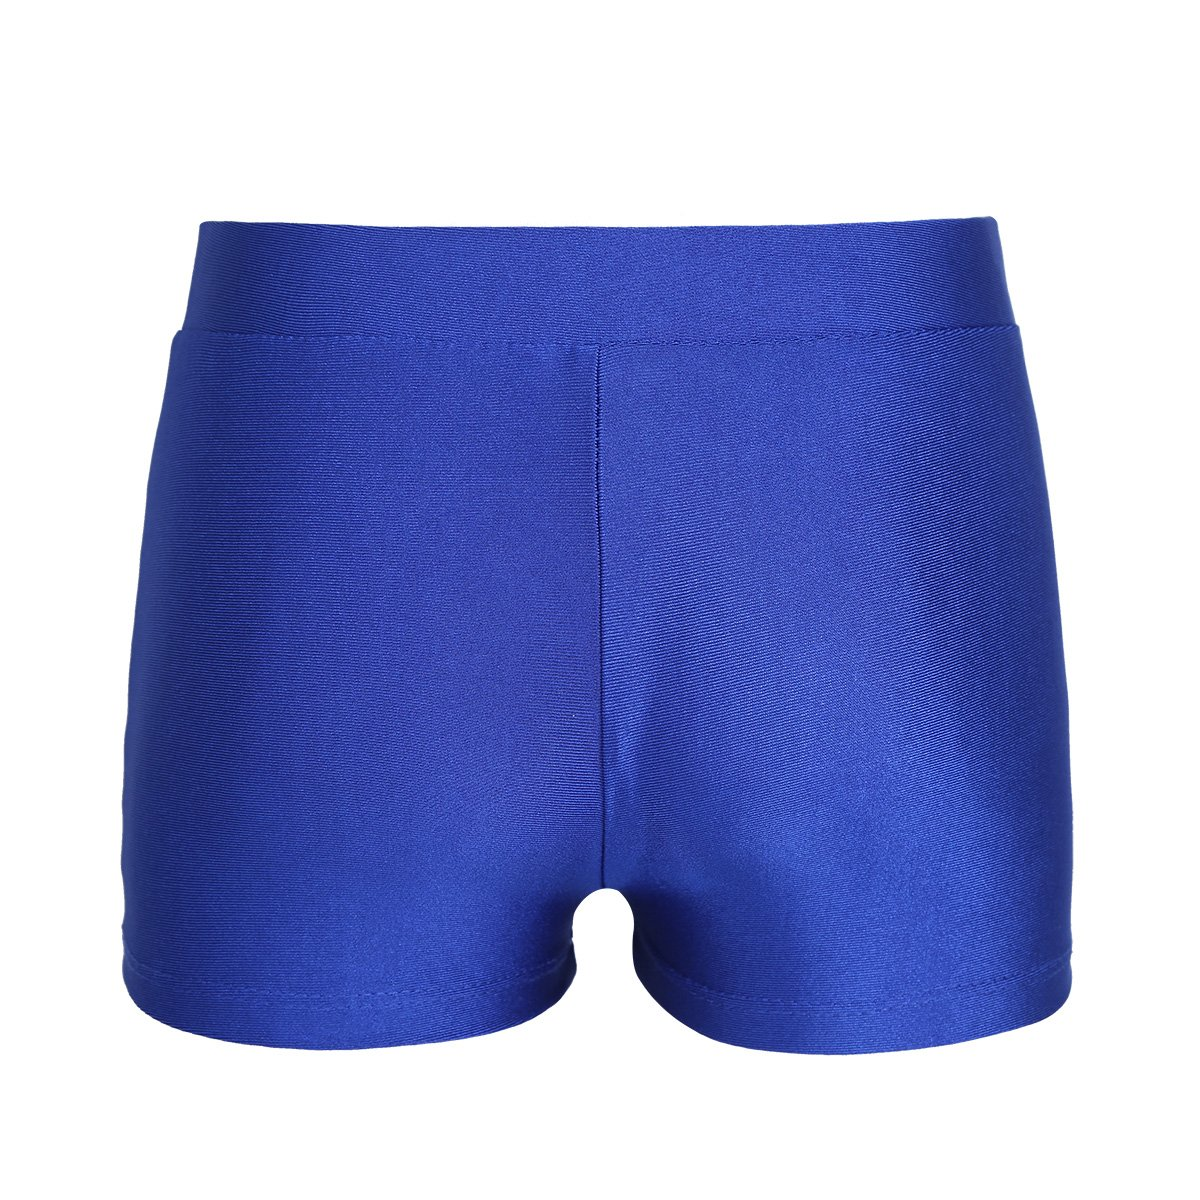 iEFiEL Kids Girls Ballet Dance Booty Shorts Sports Gym Workout Yoga Cycling Running Activewear Shorts